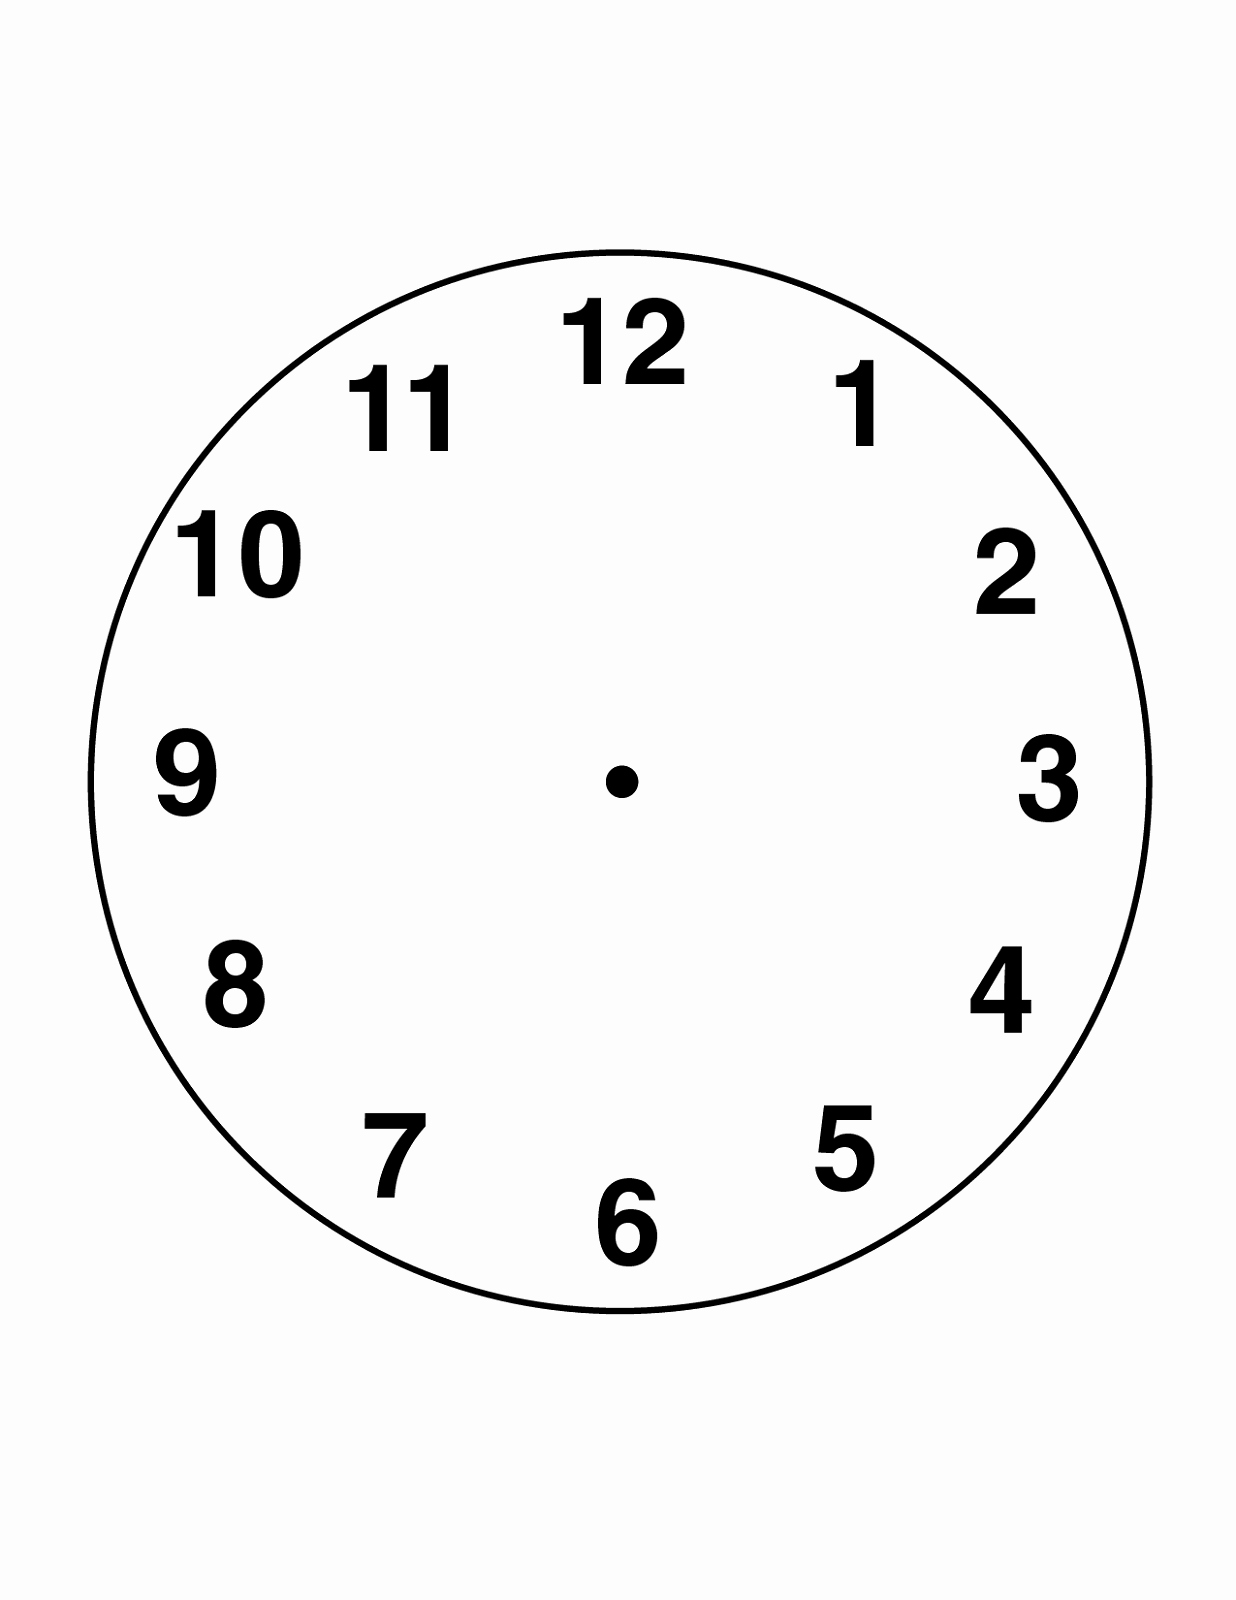 Printable Clock Face Template Awesome Clock Face Printable for Media Reading Clock